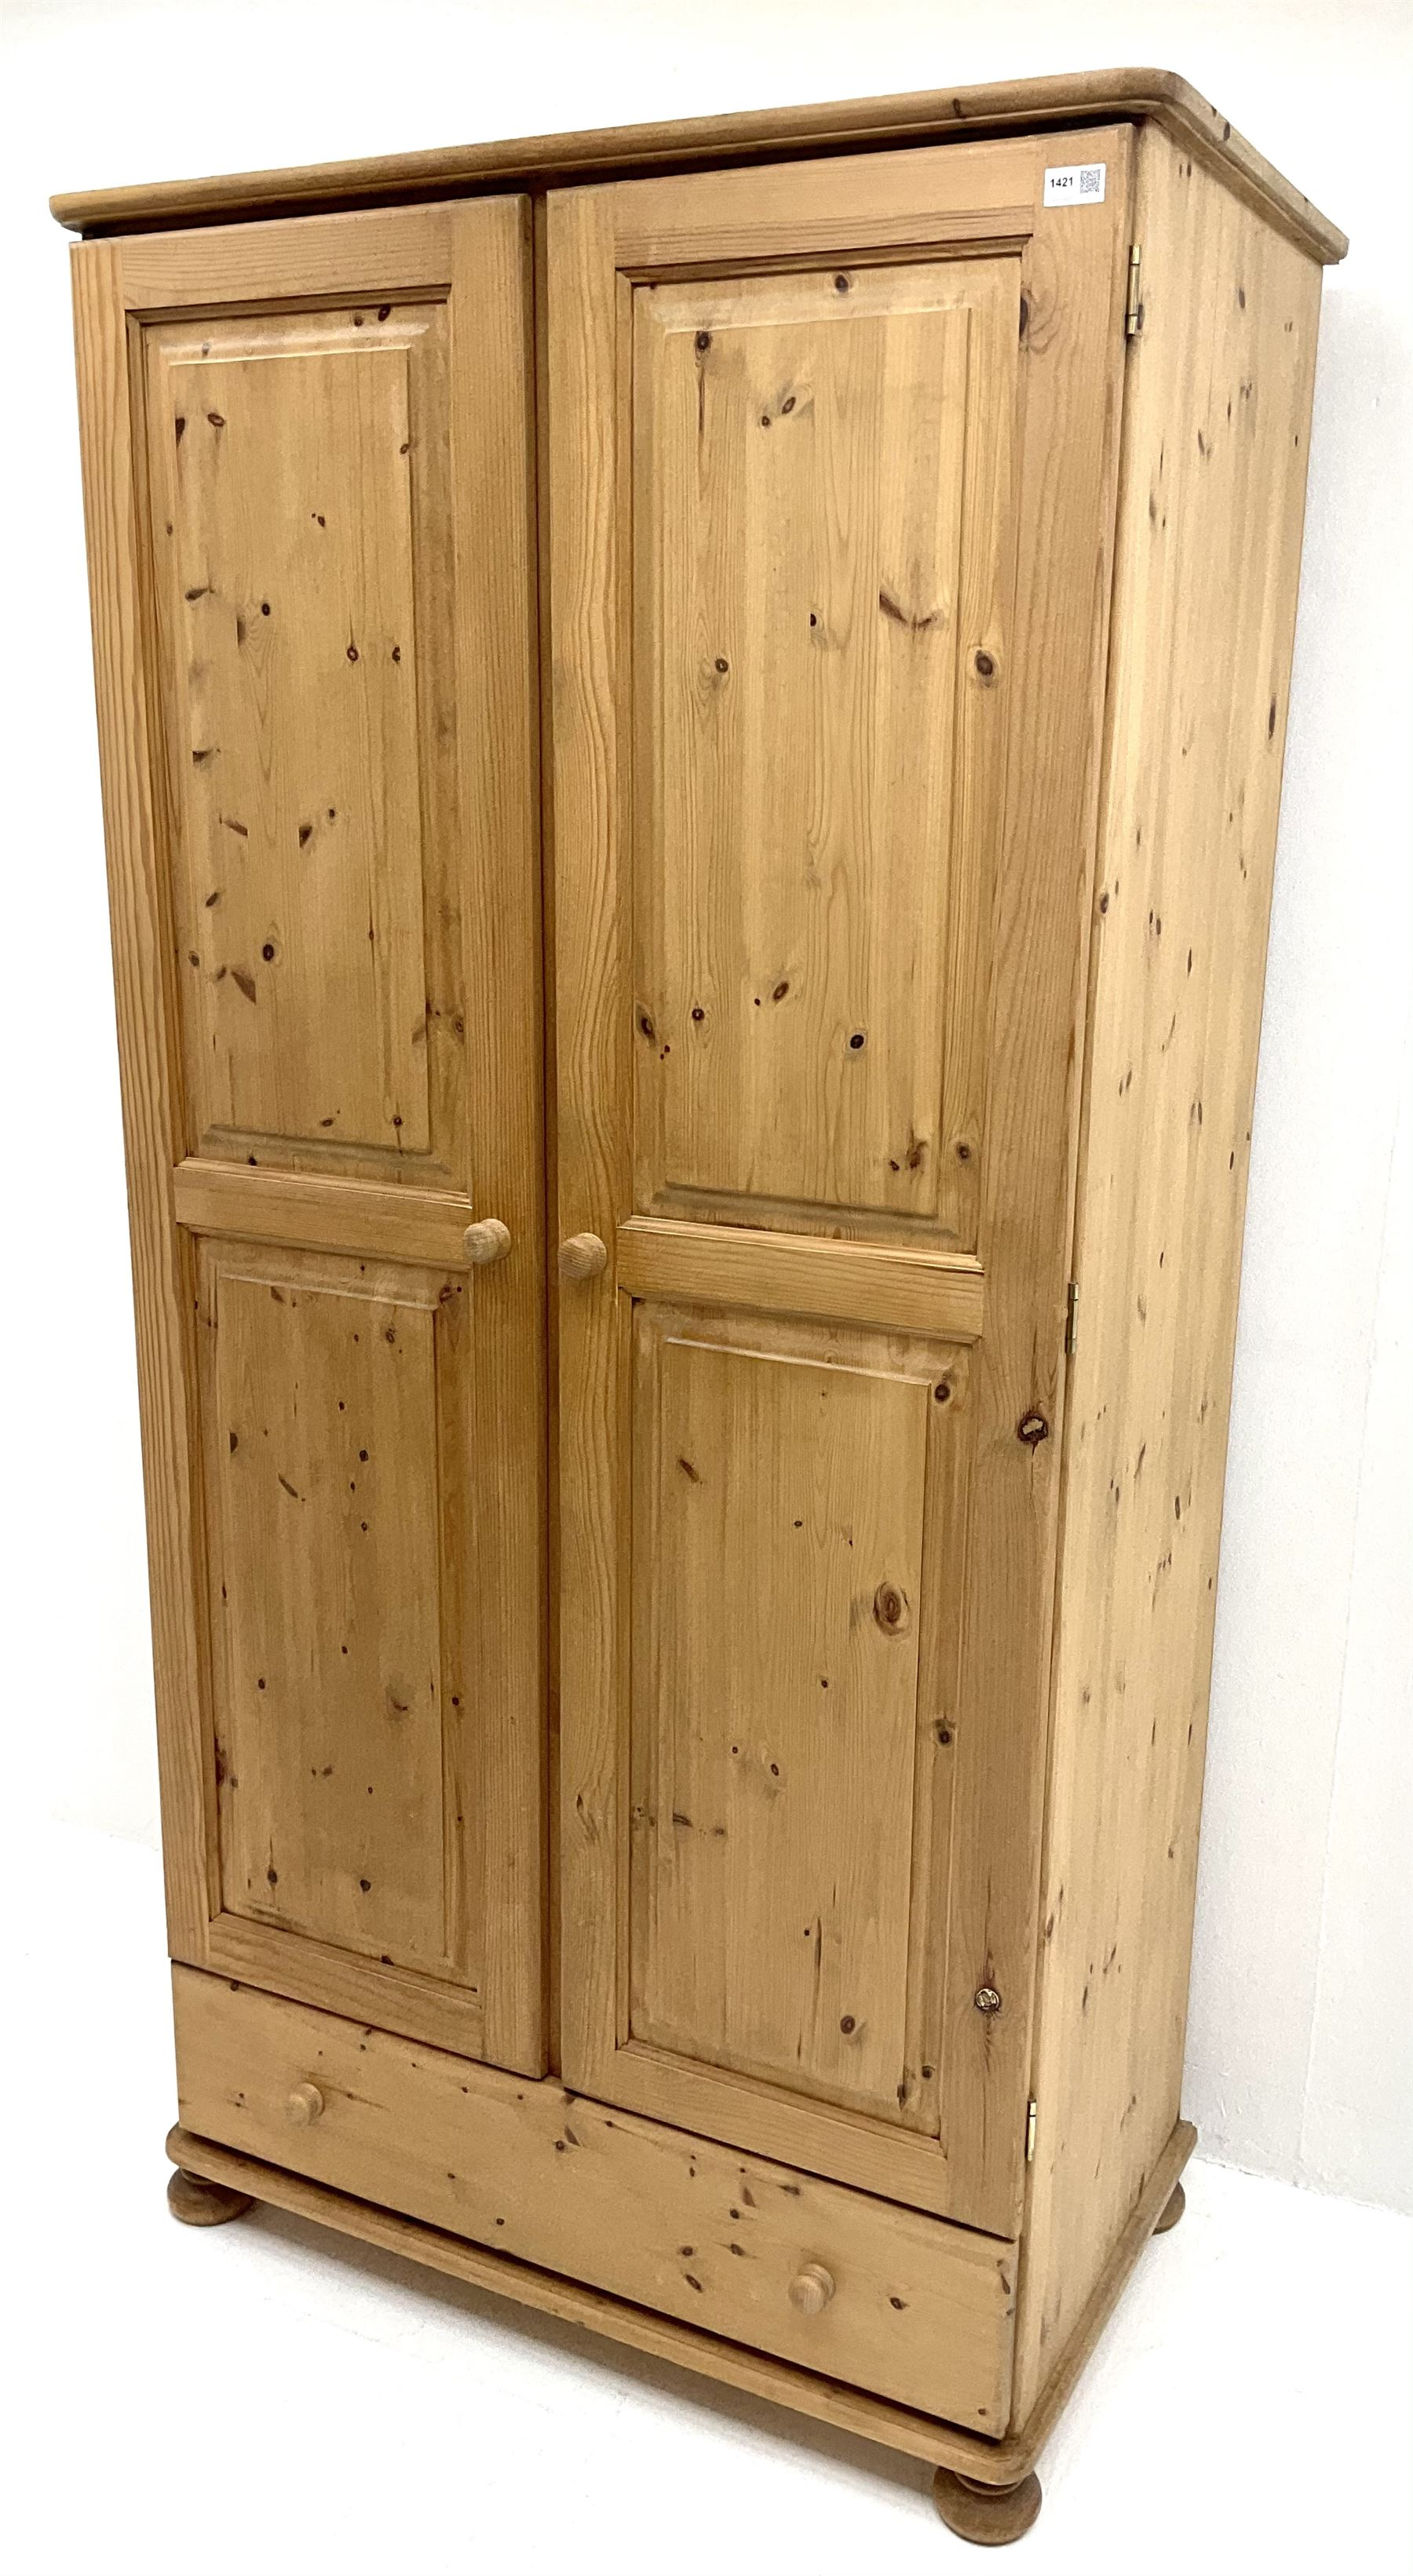 Solid pine double wardrobe - Image 2 of 5